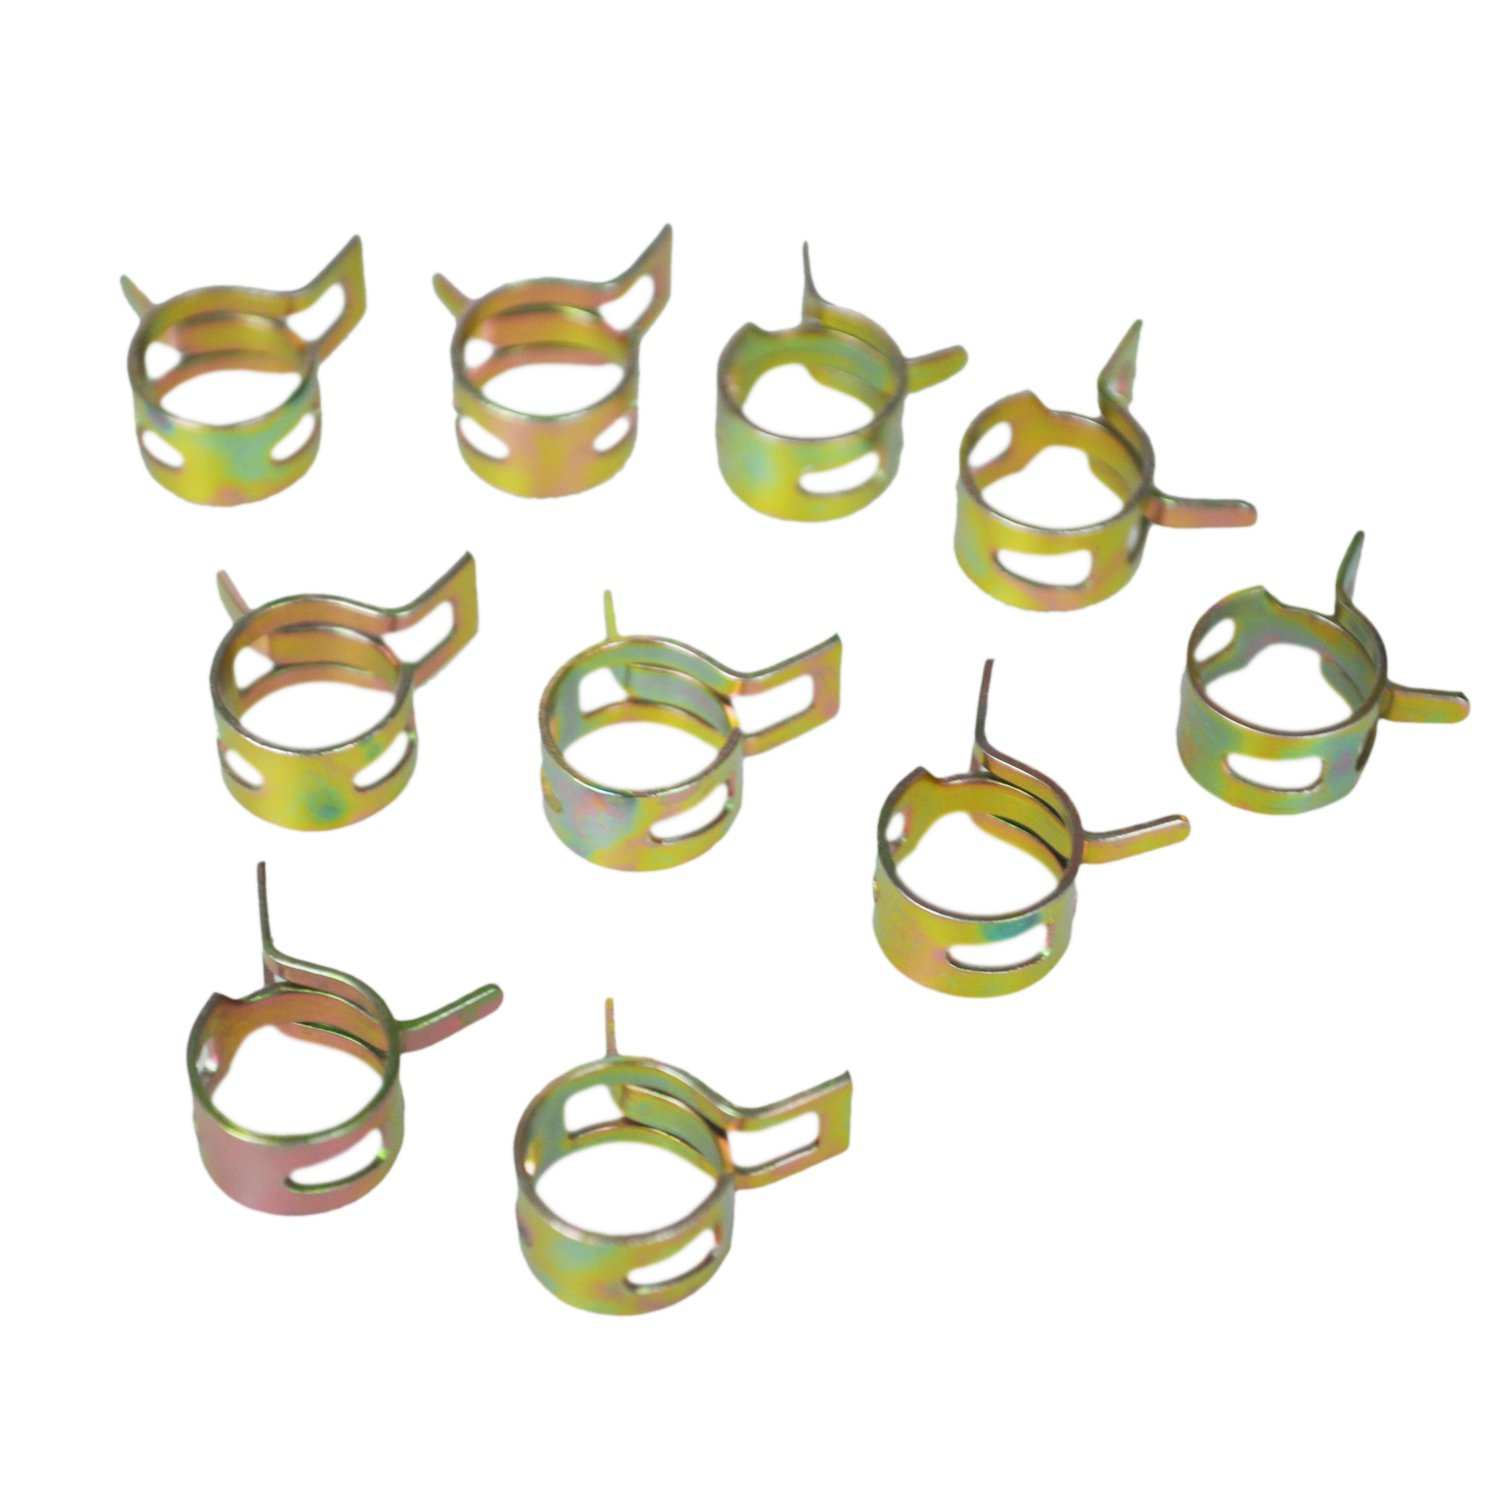 TOOGOO(R) 10Pcs 11mm Spring Band Type Fuel Vacuum Hose Silicone Pipe Tube Clamp Clip